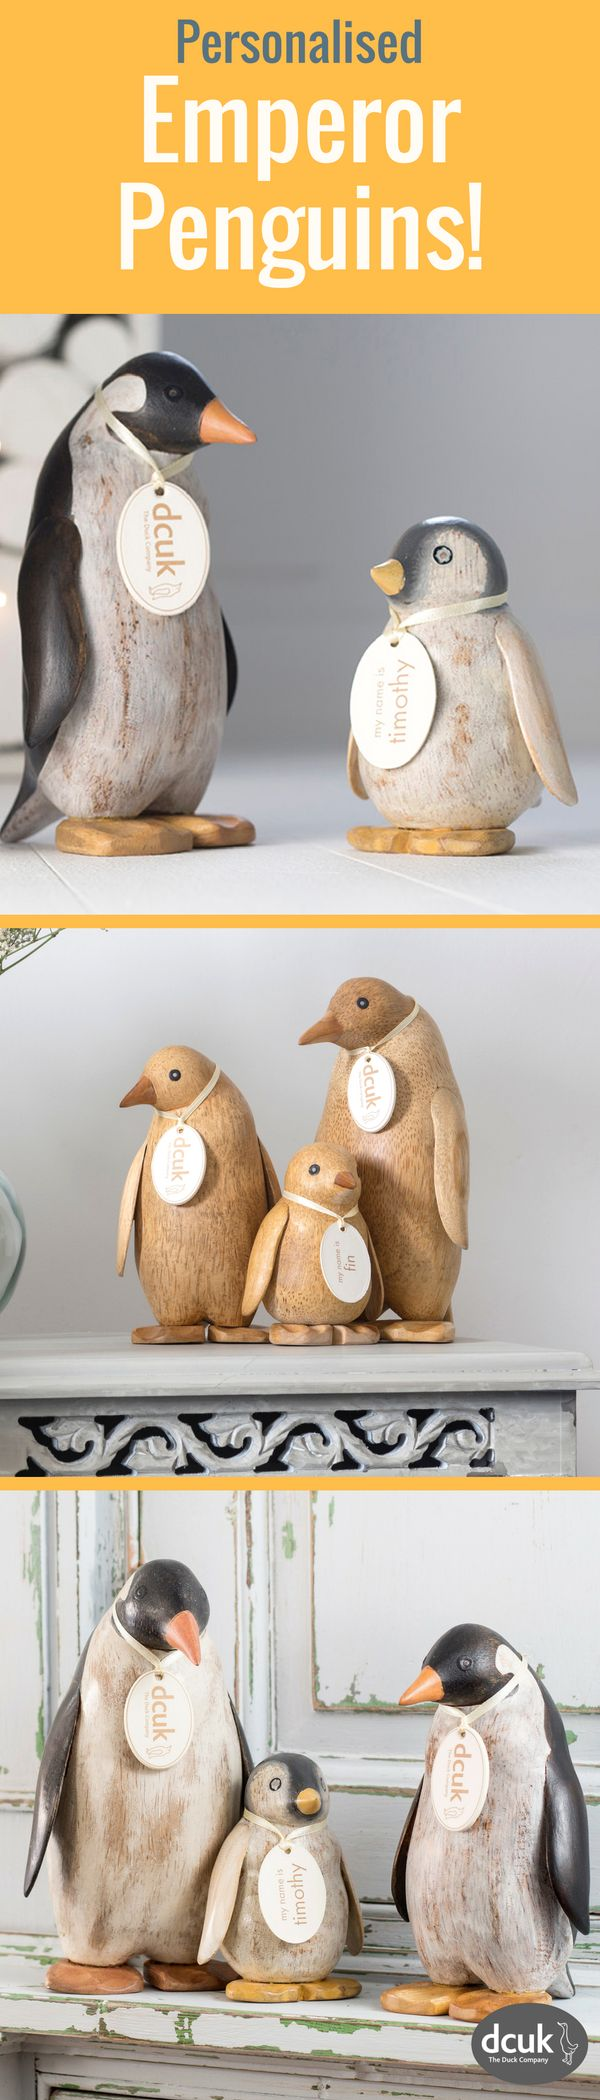 Our range of natural or painted finish Emperor Penguins have arrived! Perfect for penguin lovers as gifts or home decor accessories - each can be personalised with the name of your choice on their tags! See these, and explore our other penguin ranges at The Duck Company, DCUK!